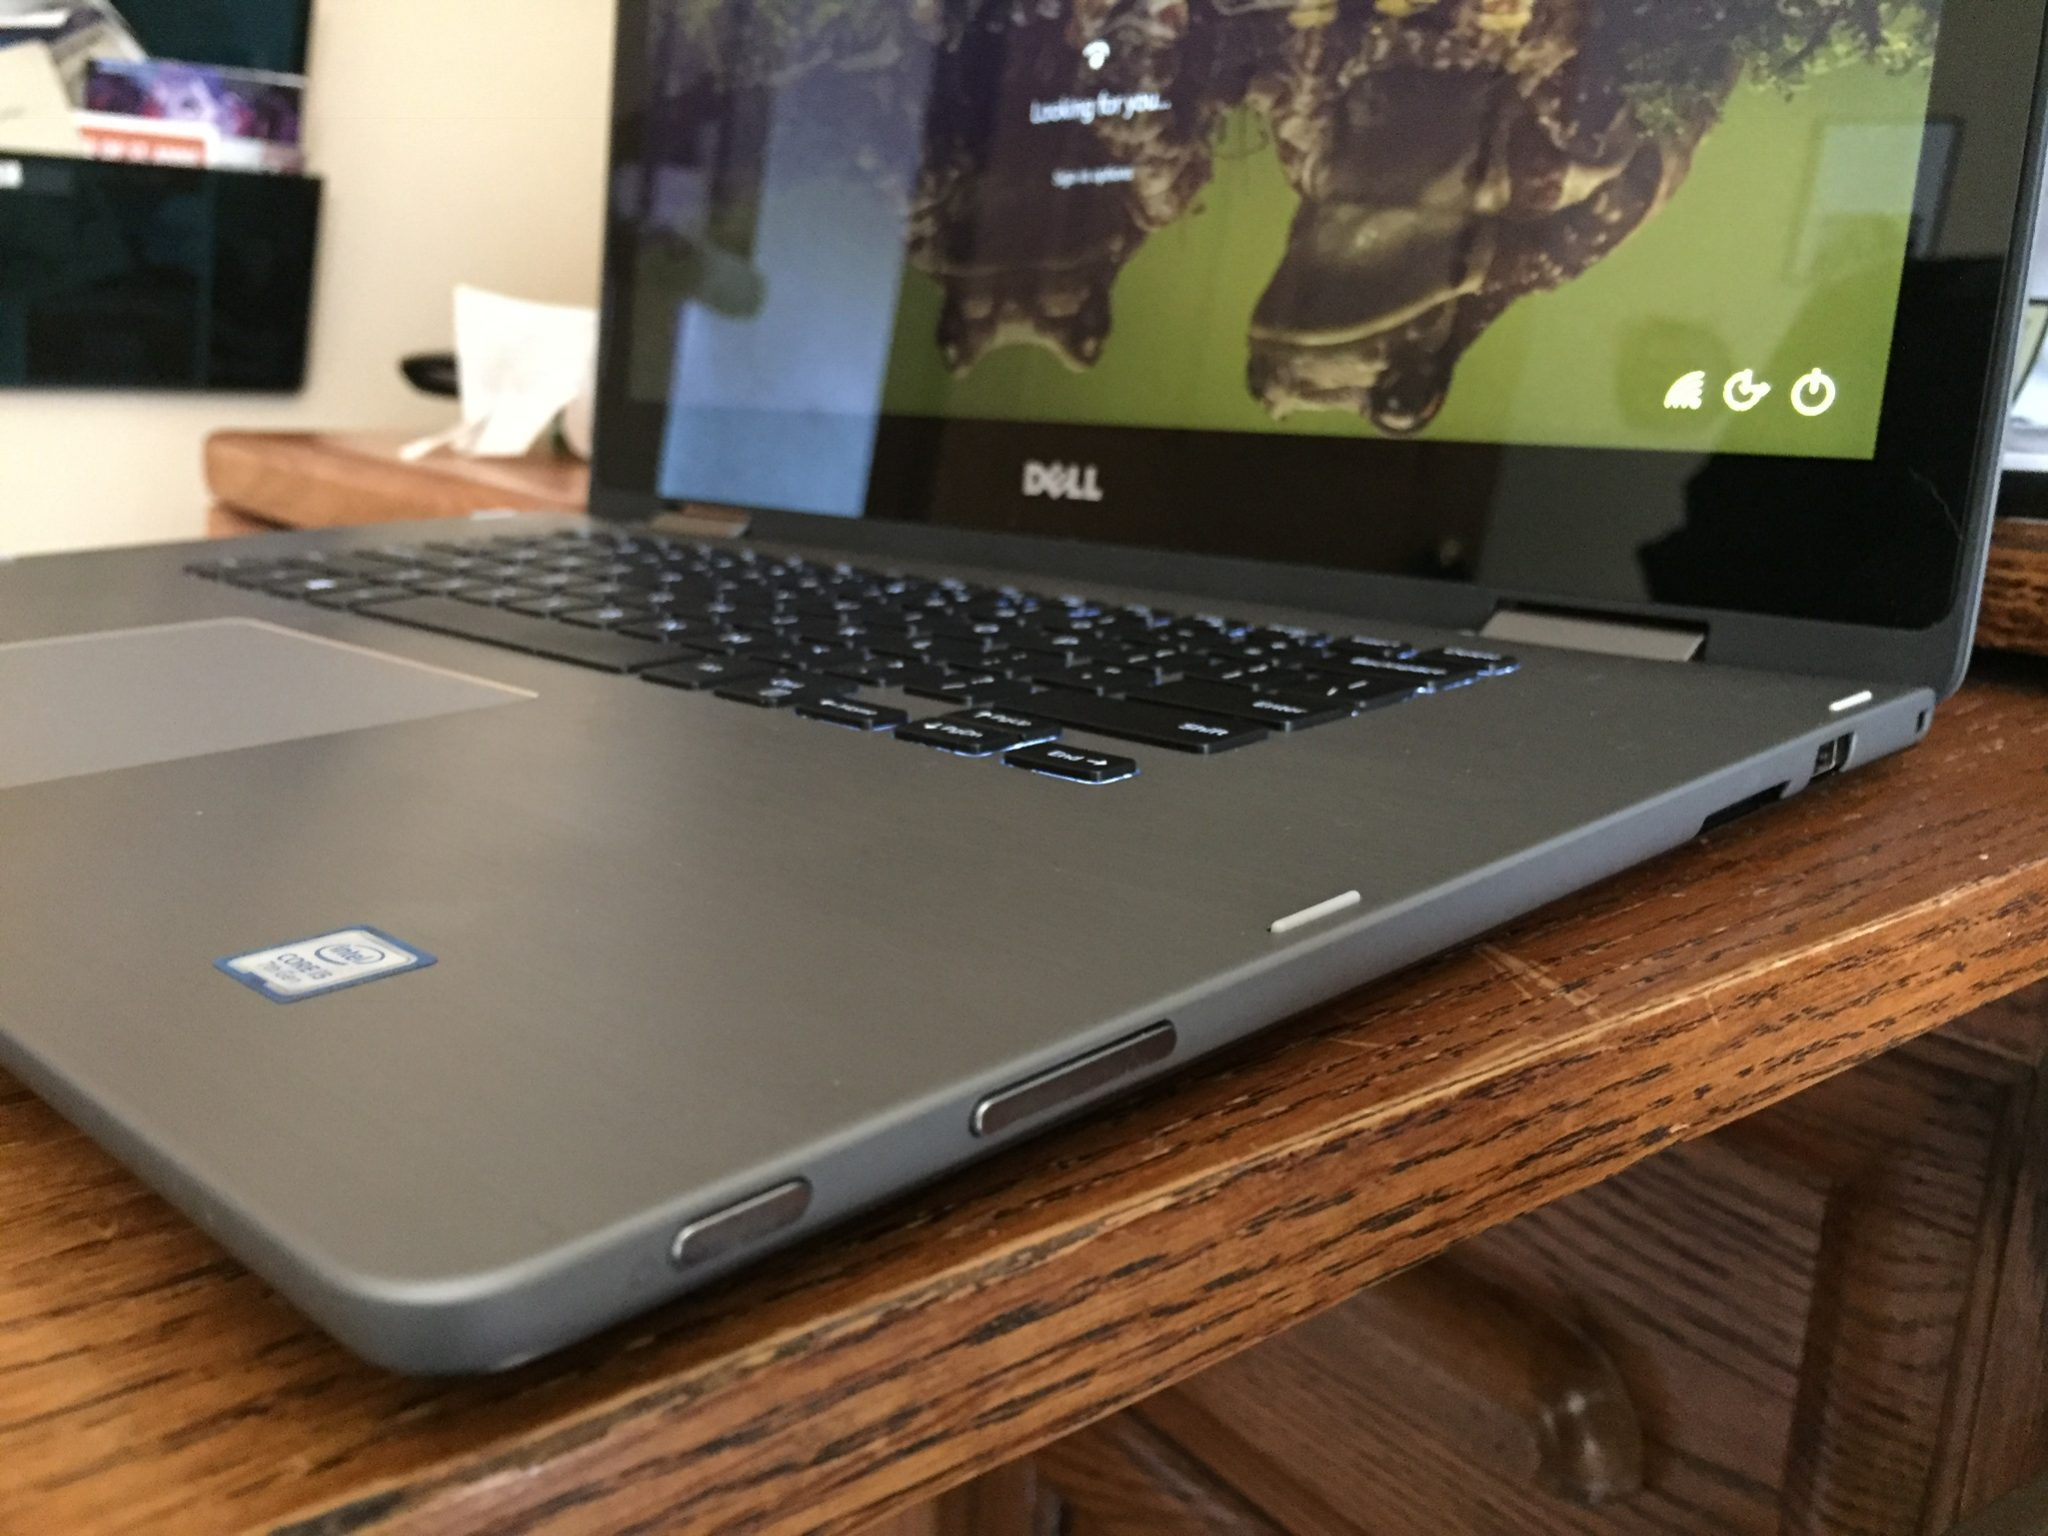 Dell Inspiron 15 Full Review And Rating On The Dell 7579